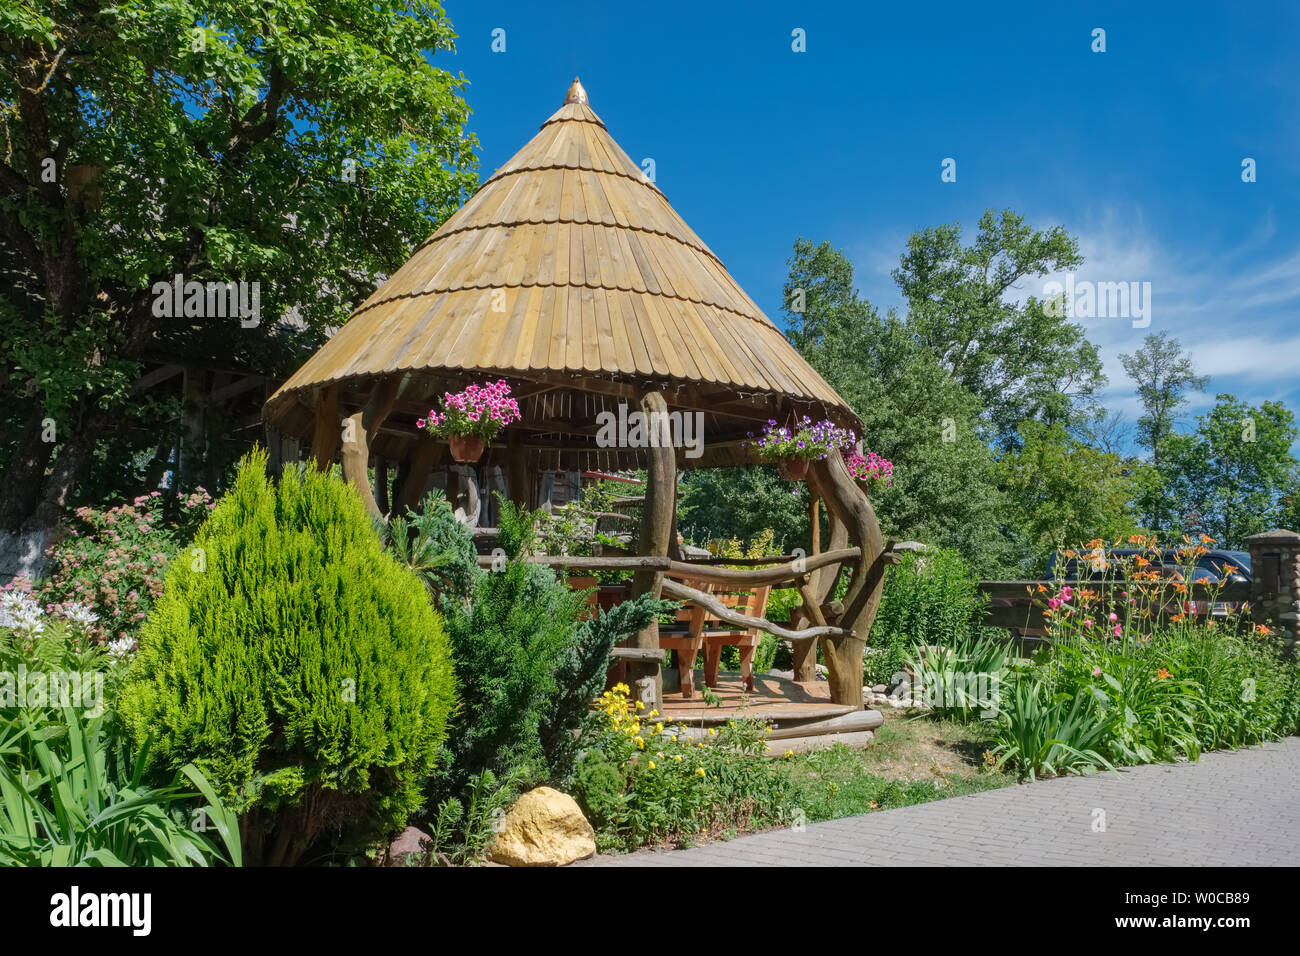 Backyard Gazebo Garden High Resolution Stock Photography And Images Alamy